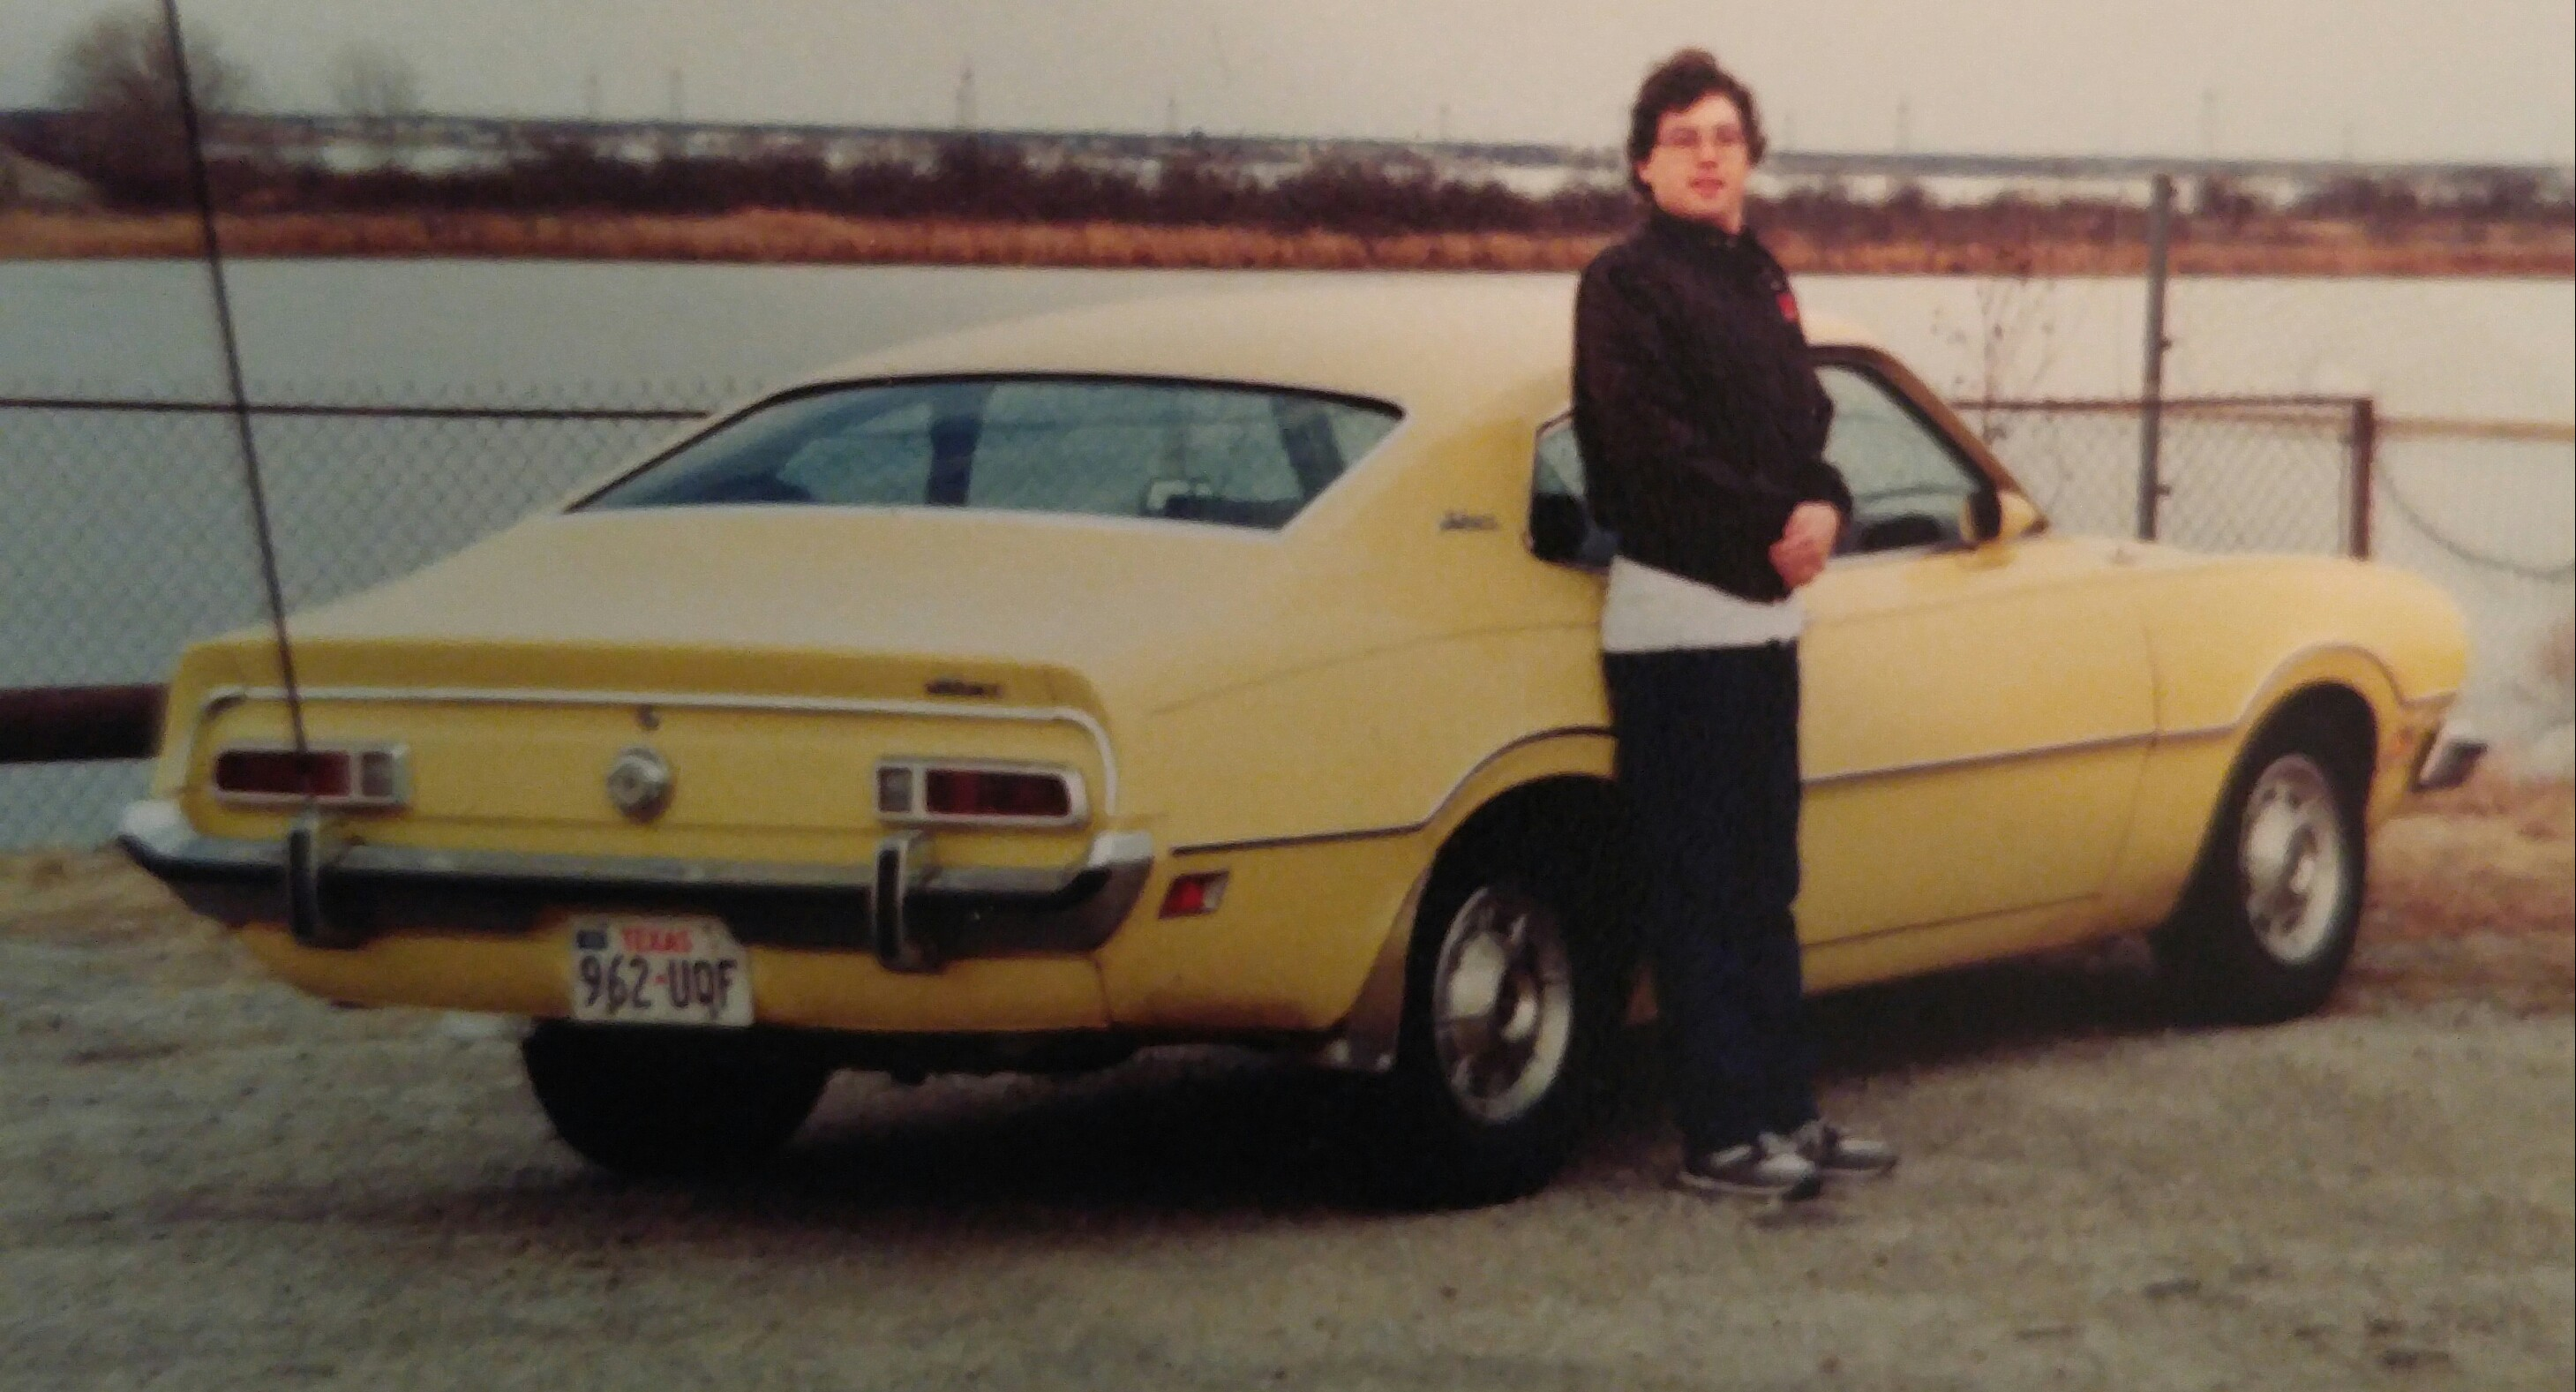 1969 cougar classic car restoration by doug jenkins garage - Mine Isn T A Grabber But I Own A Medium Bright Yellow 73 2dr Maverick Myself I Ve Owned It Since Sept Of 90 I Paid 1100 For It This Is It